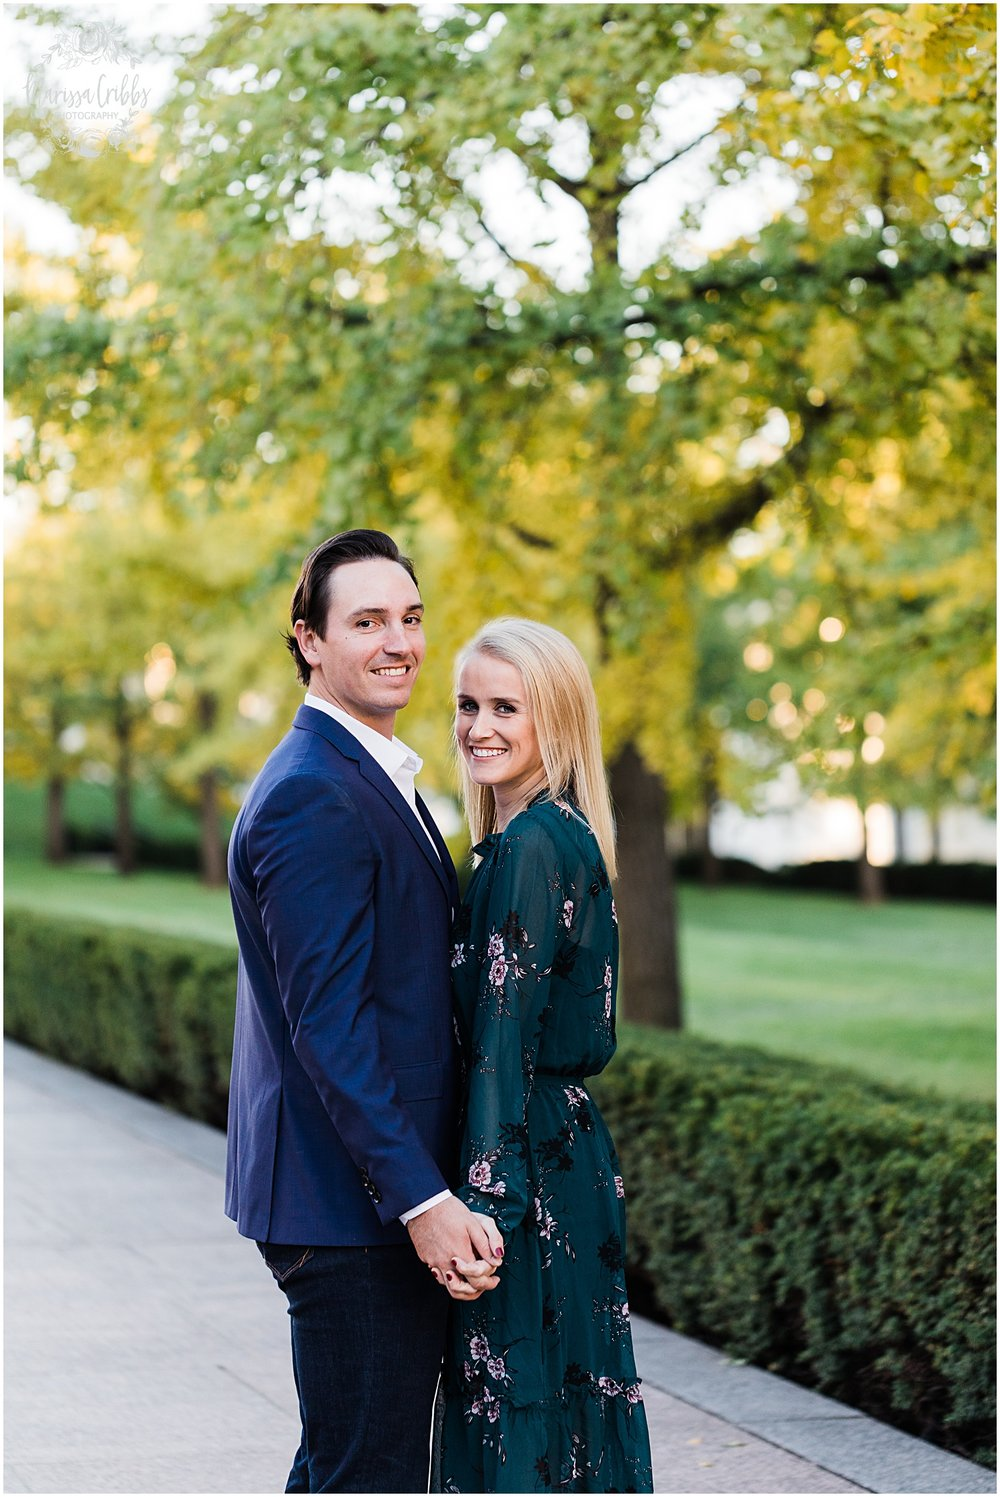 HALEY & CHASE ENGAGED LOOSE PARK & NELSON ATKINS | FALL ENGAGEMENT PHOTOS | MARISSA CRIBBS PHOTOGRAPHY_6878.jpg